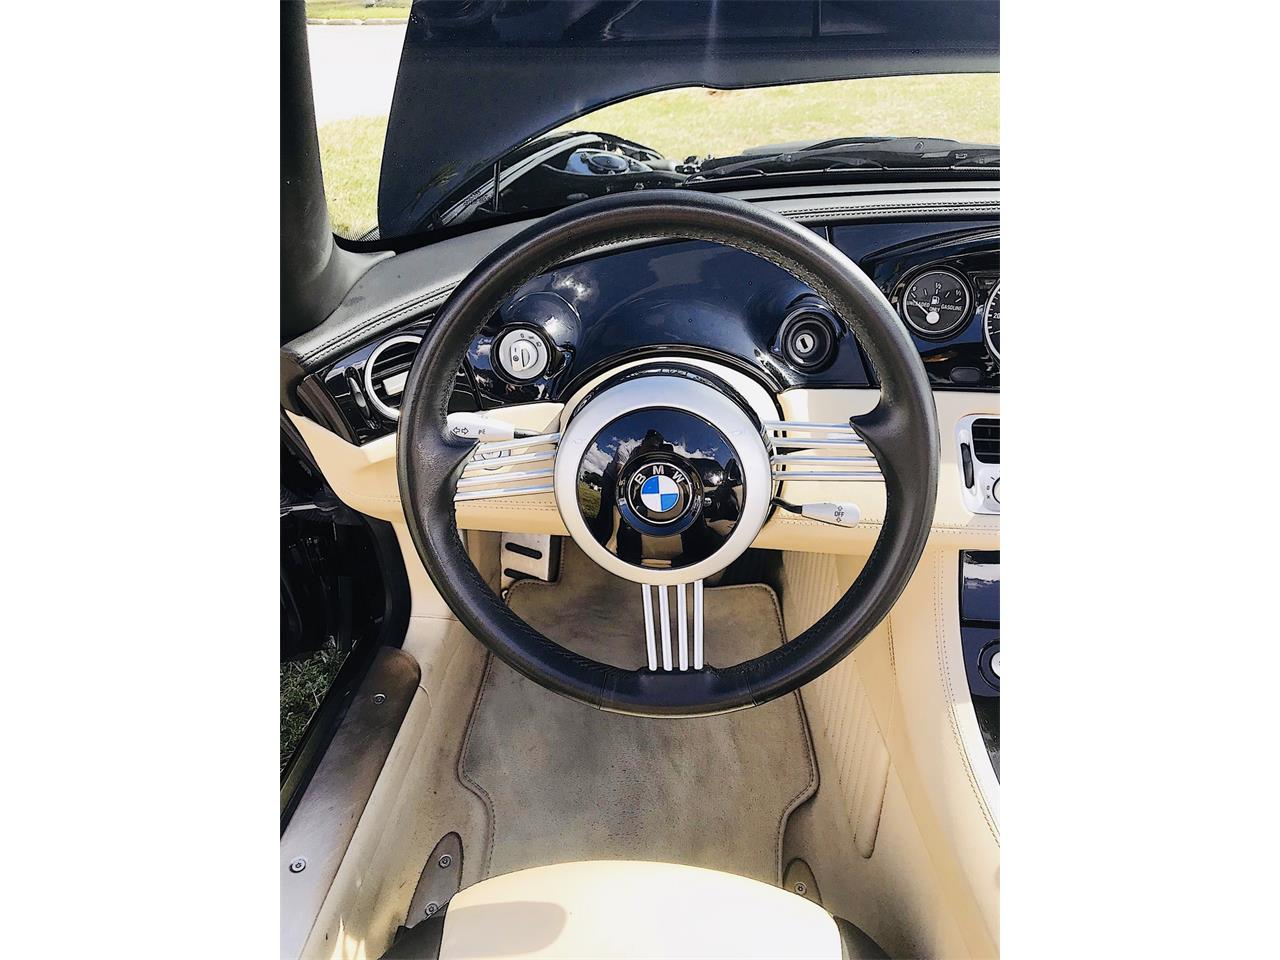 Large Picture of '01 BMW Z8 located in Florida - $174,750.00 Offered by a Private Seller - OV1C